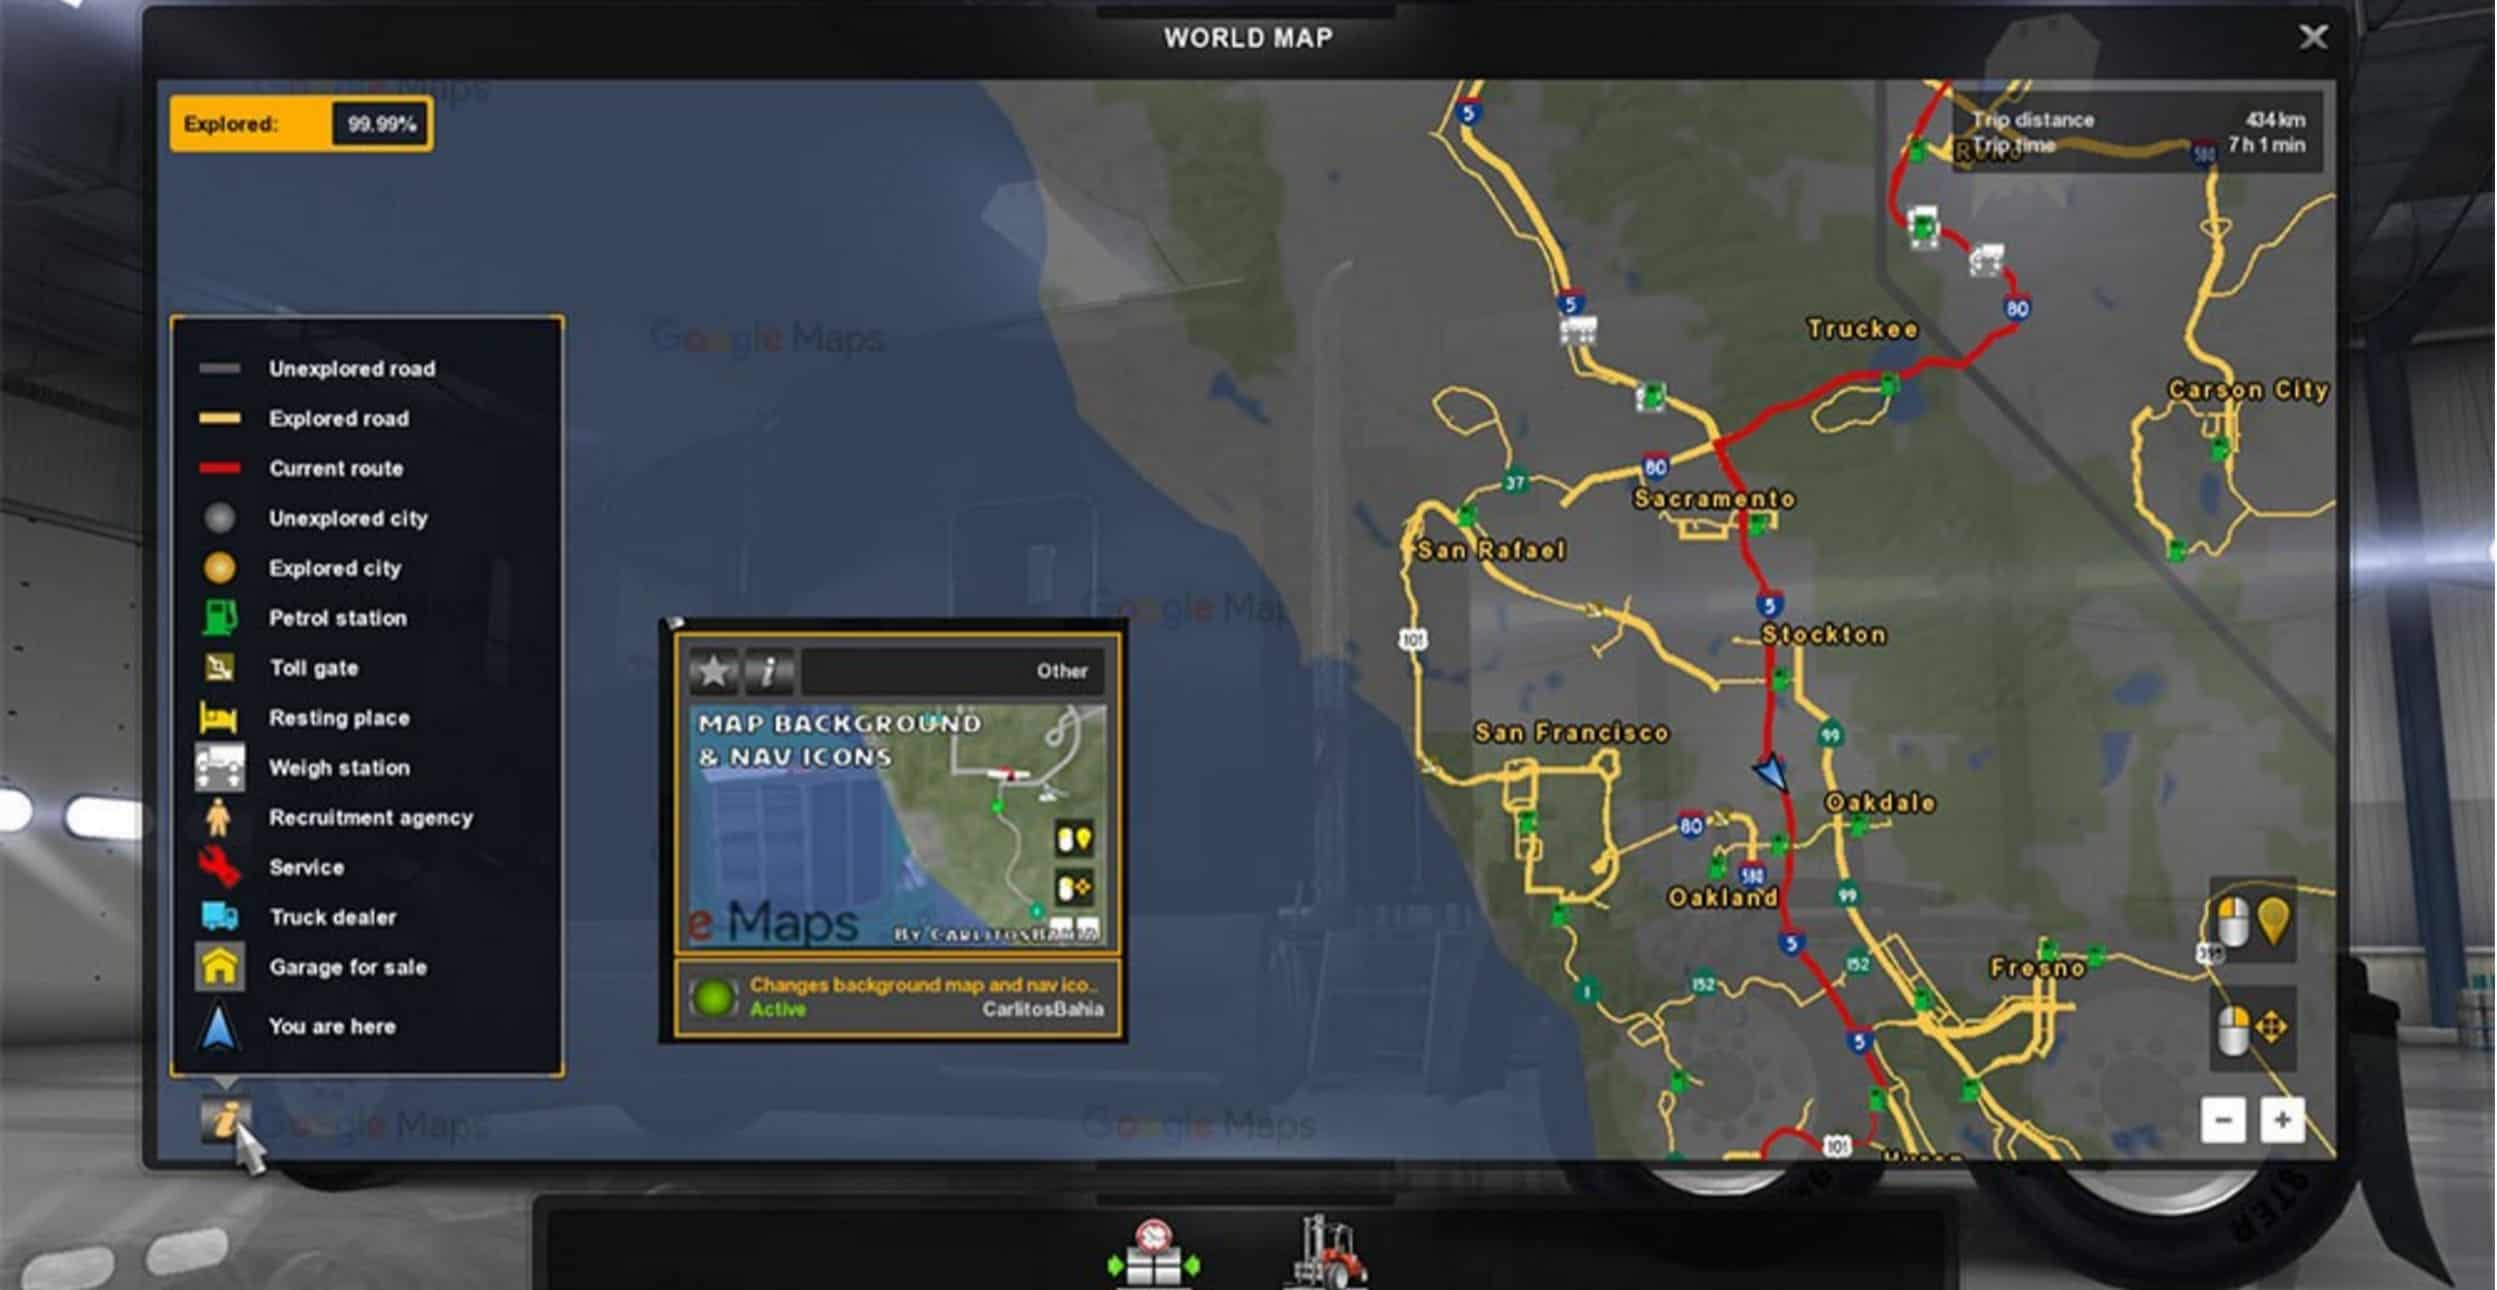 Background map and nav icons (map, gps and route advisor